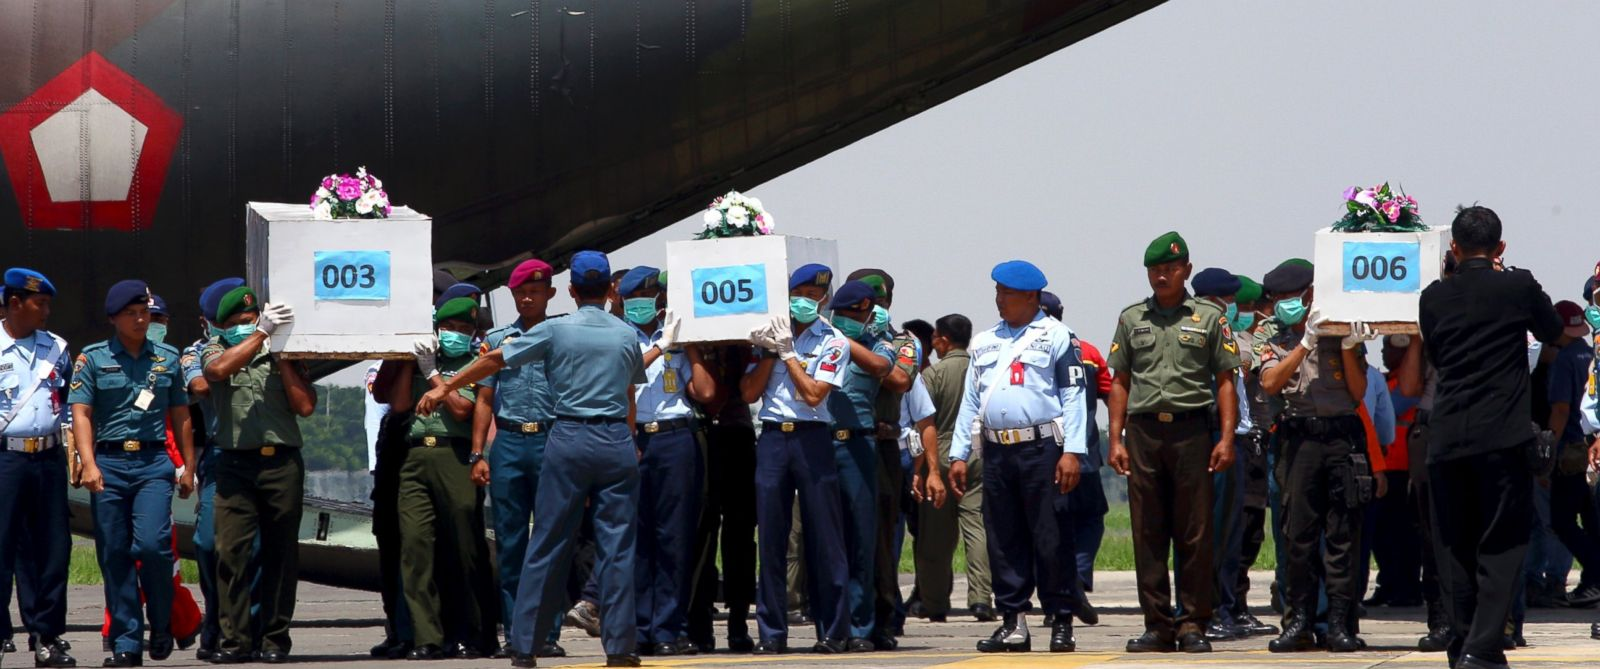 Indonesian soldiers carry coffins containing victims of AirAsia Flight 8501 upon arrival at Indonesian Military Air Force base in Surabaya, Indonesia, Thursday, Jan. 1, 2015.